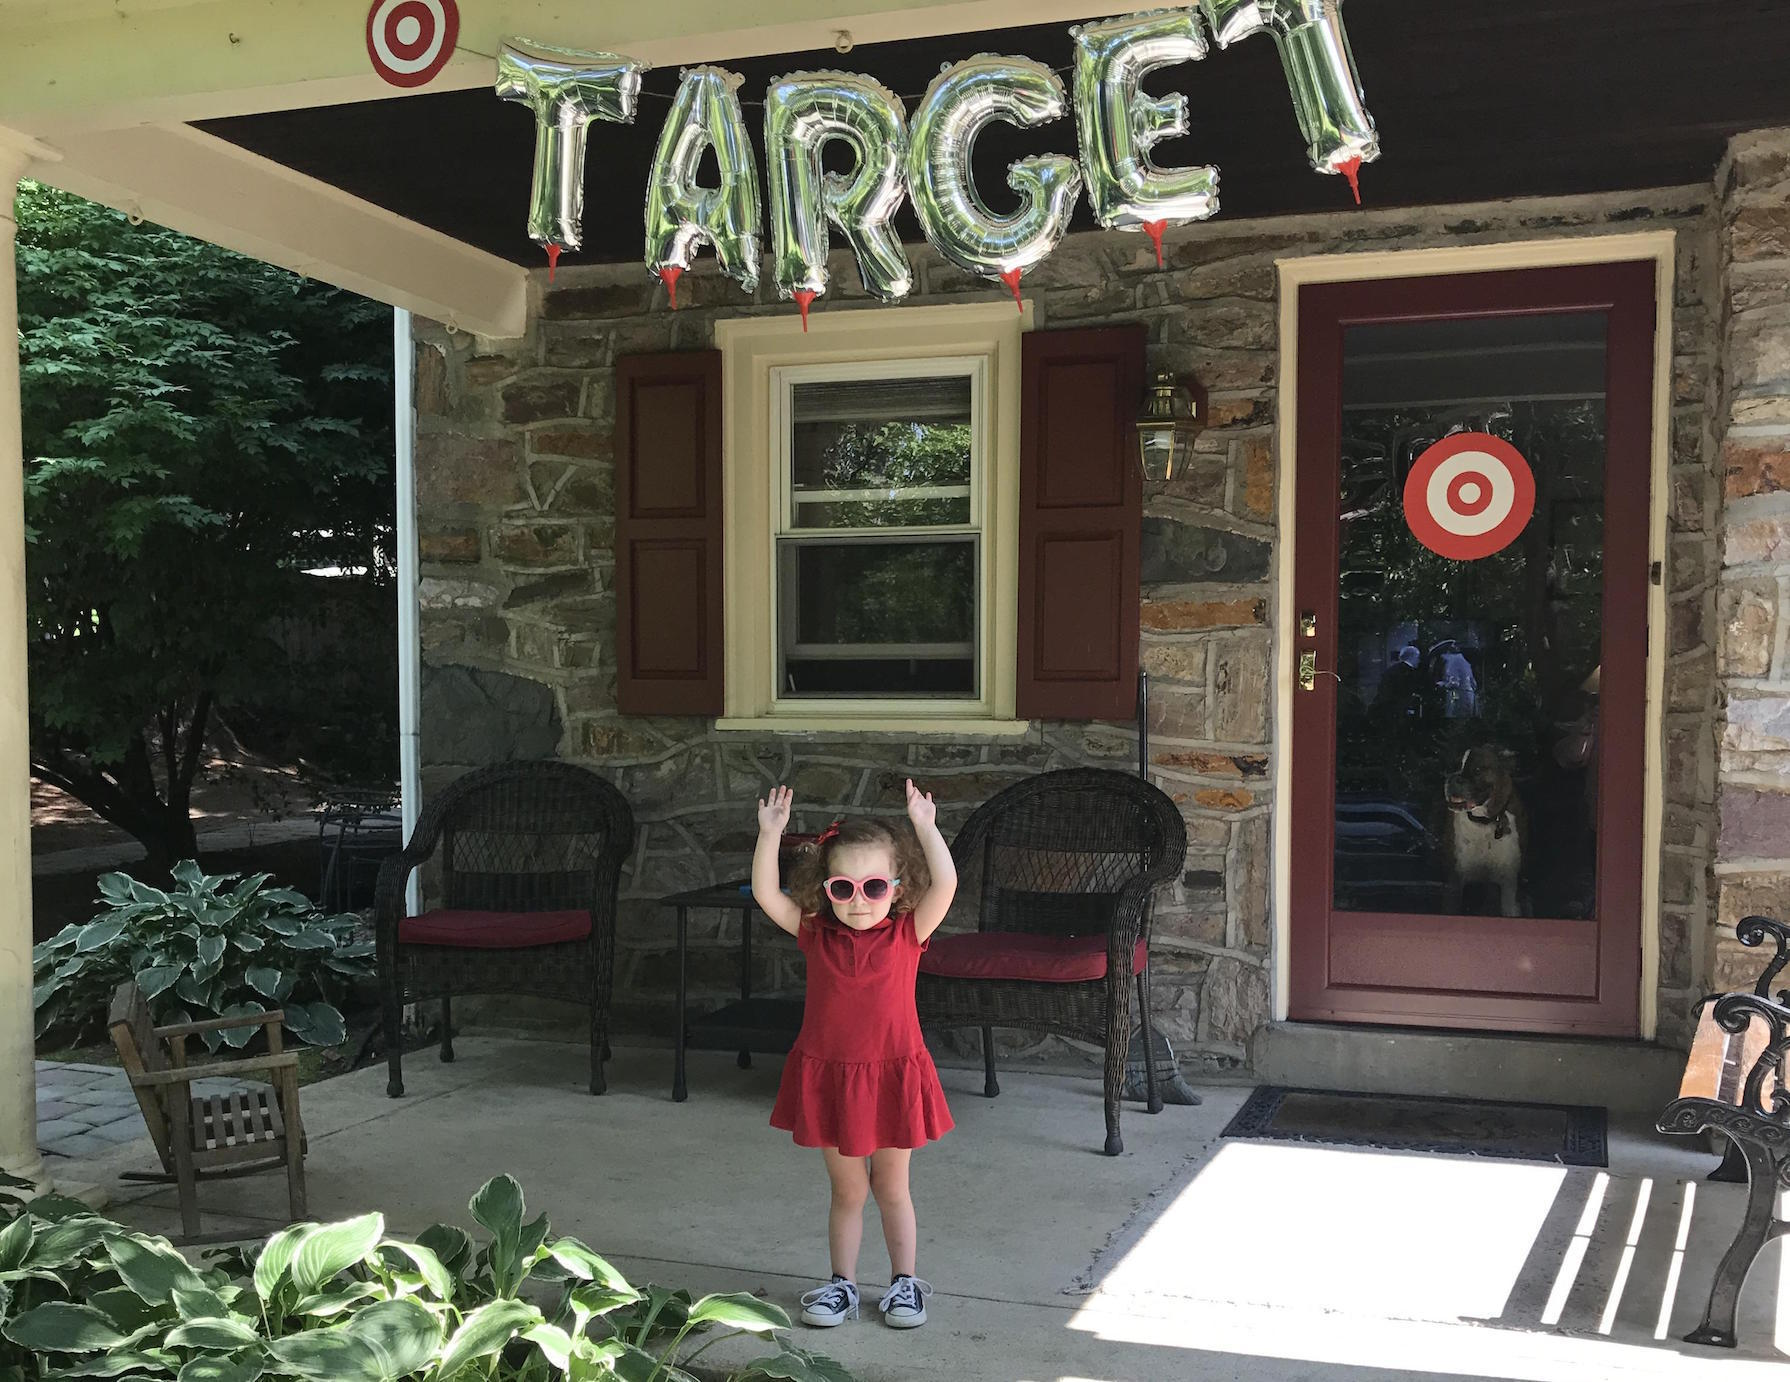 This Adorable Toddler Requested A Target Birthday Party And Her Mom Delivered With Pizza Hut